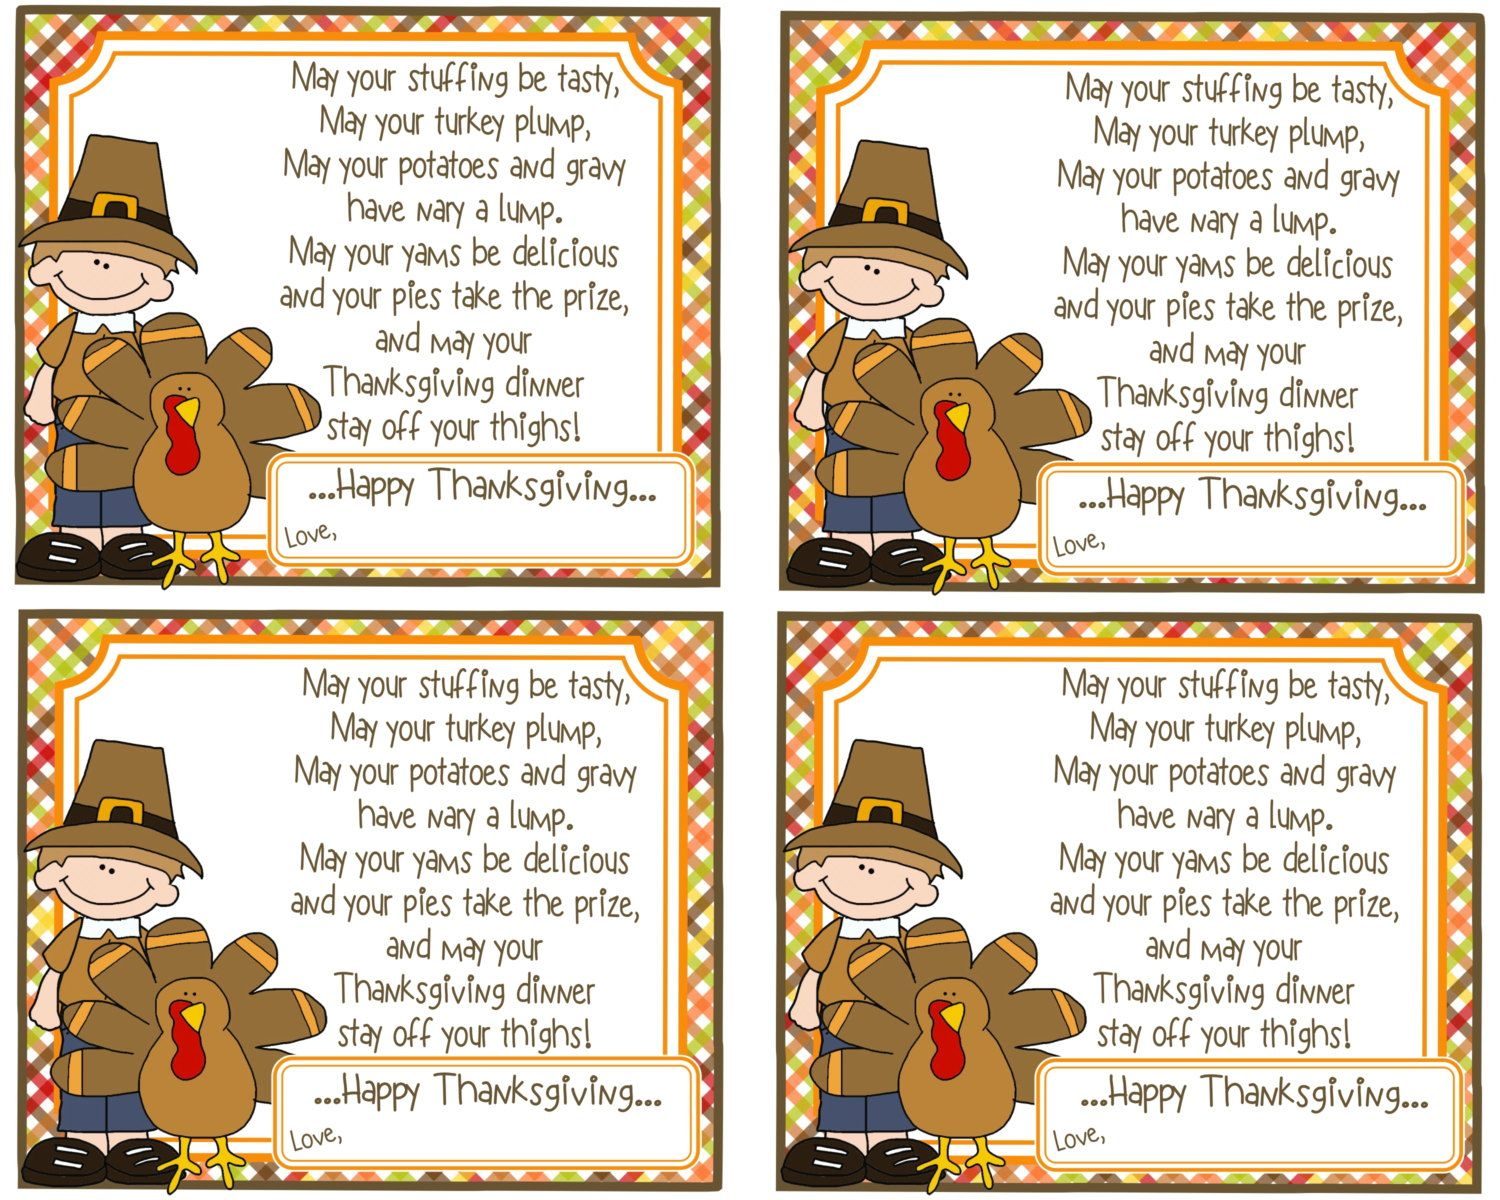 Funny Little Thanksgiving Poem Is Great To Send To Friends